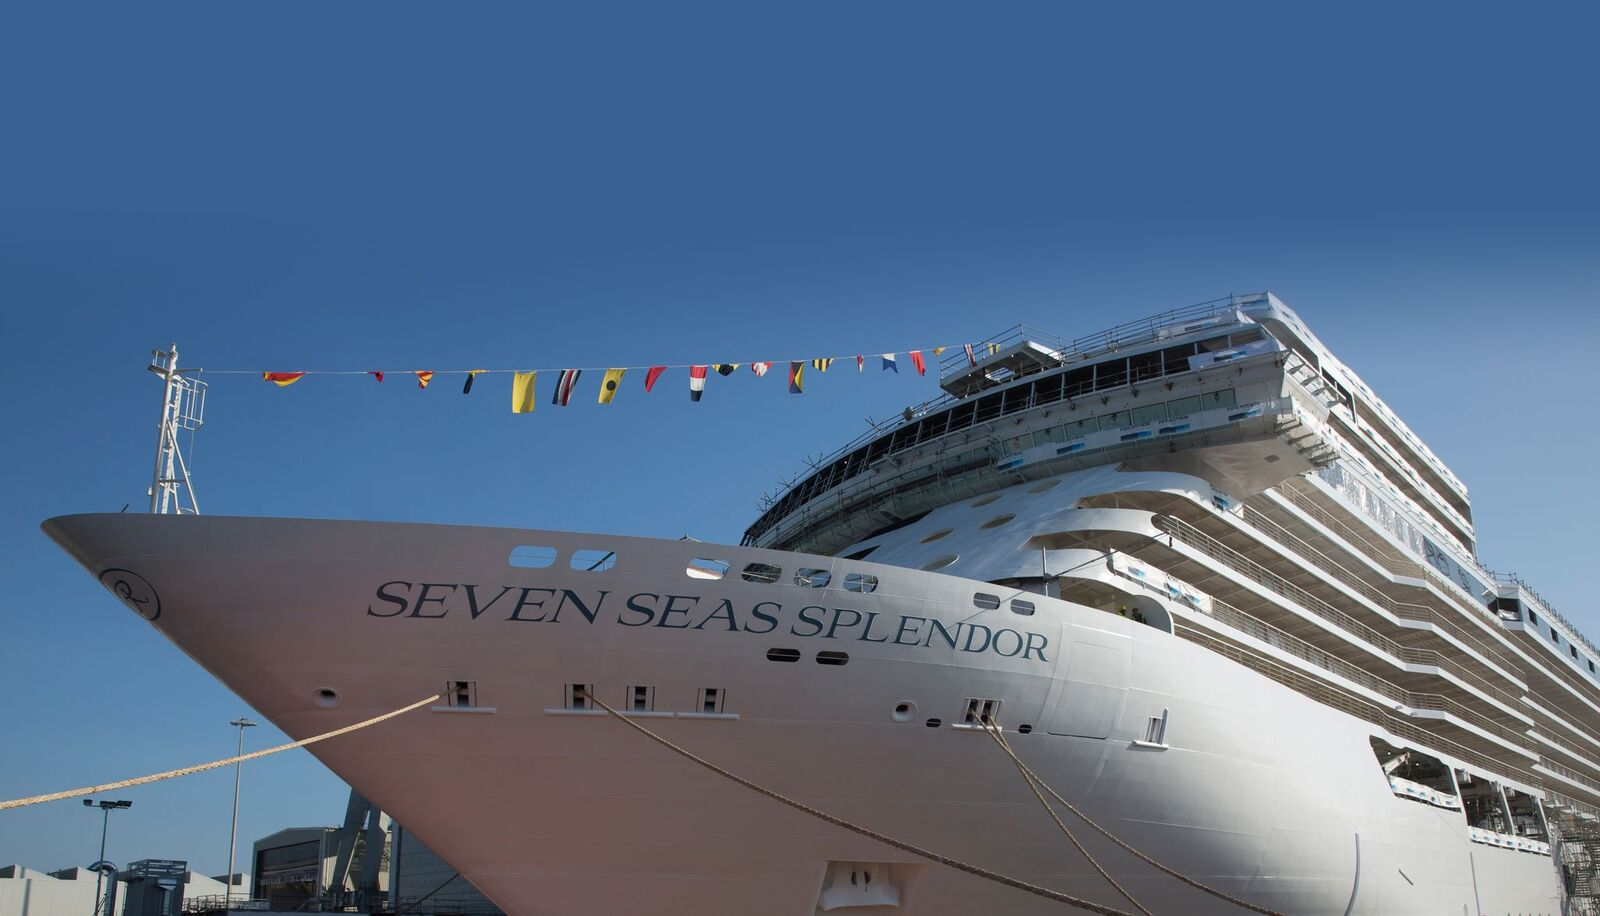 http://highend-traveller.com/regent-seven-seas-cruises-takes-delivery-of-the-ship-that-perfects-luxury-seven-seas-splendor/